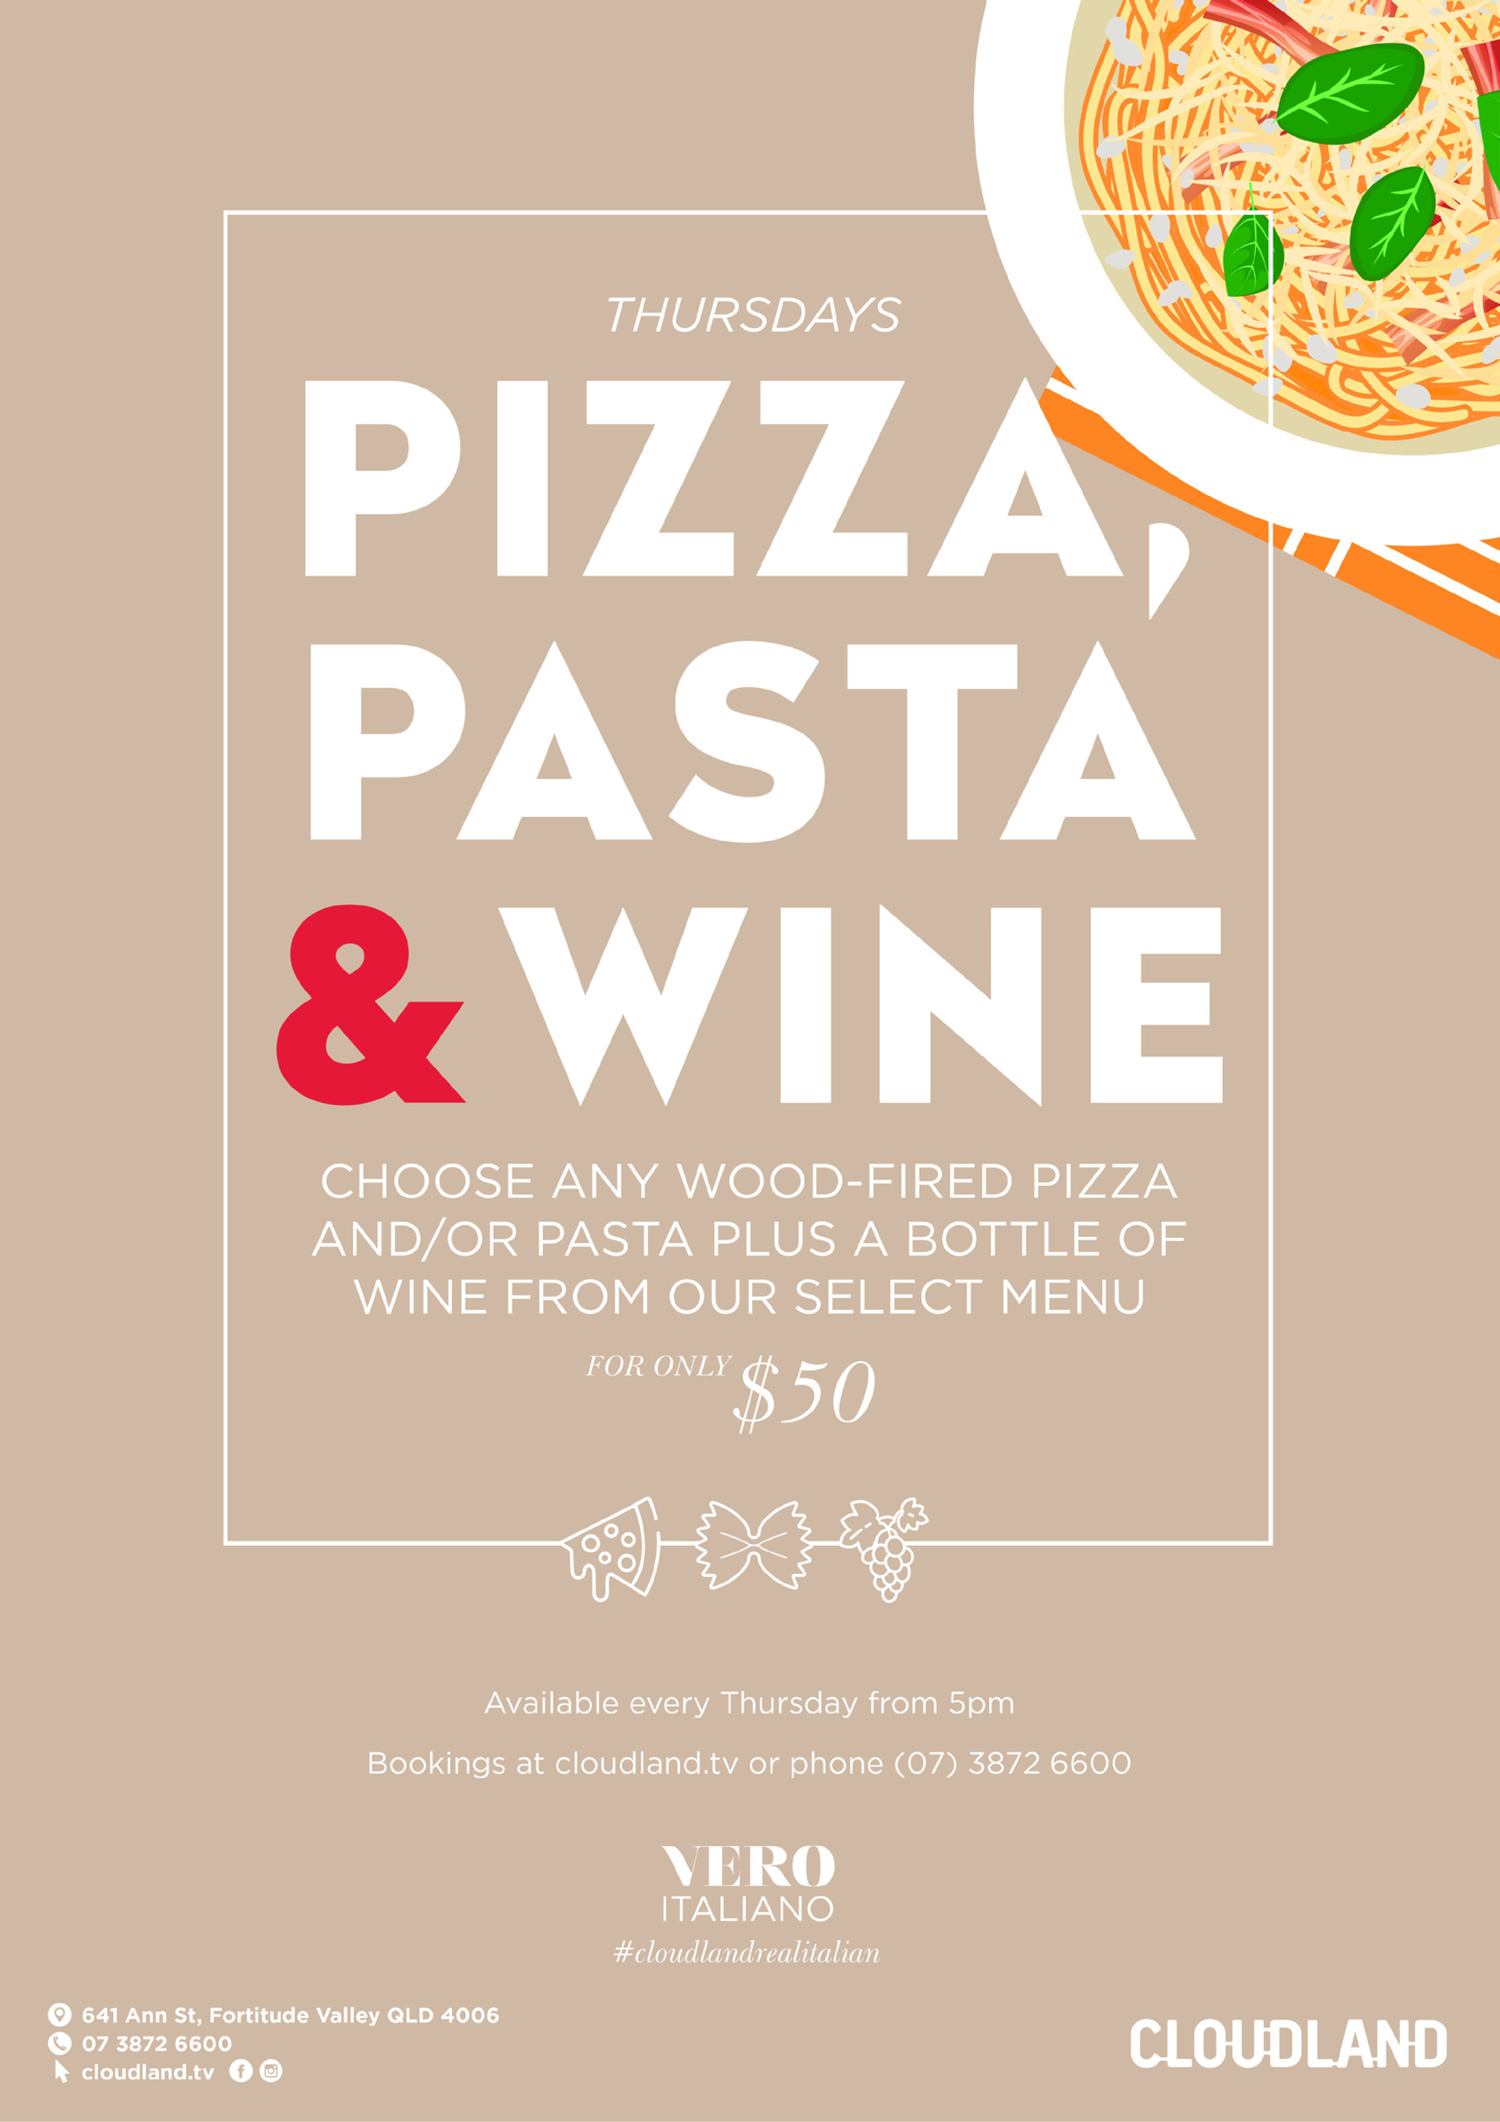 Cloudland Pizza, Pasta and Wine Thursday